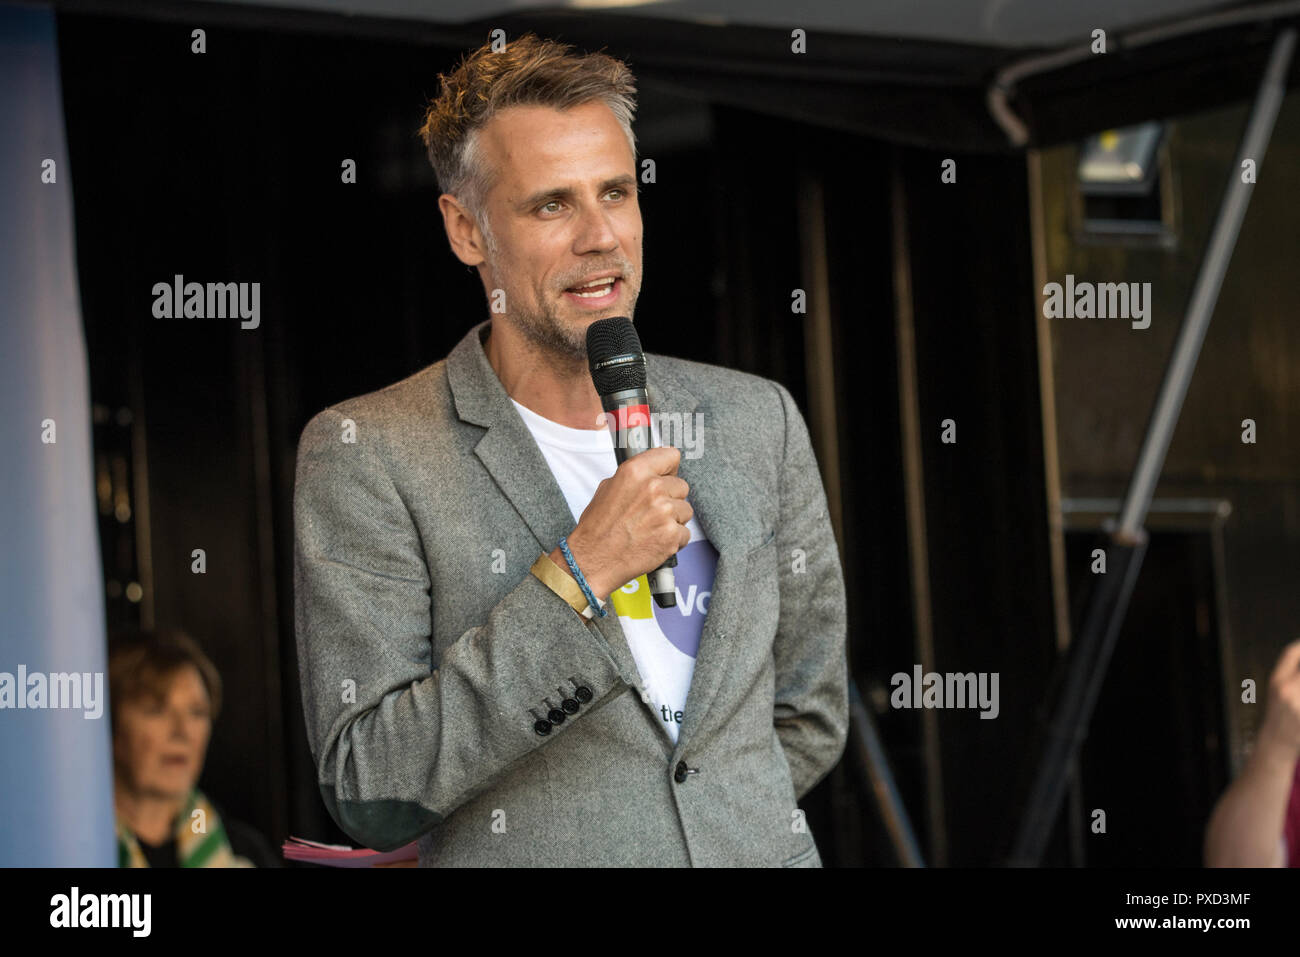 TV presenter Richard Bacon during the People's Vote march calling for a second Brexit referendum. - Stock Image